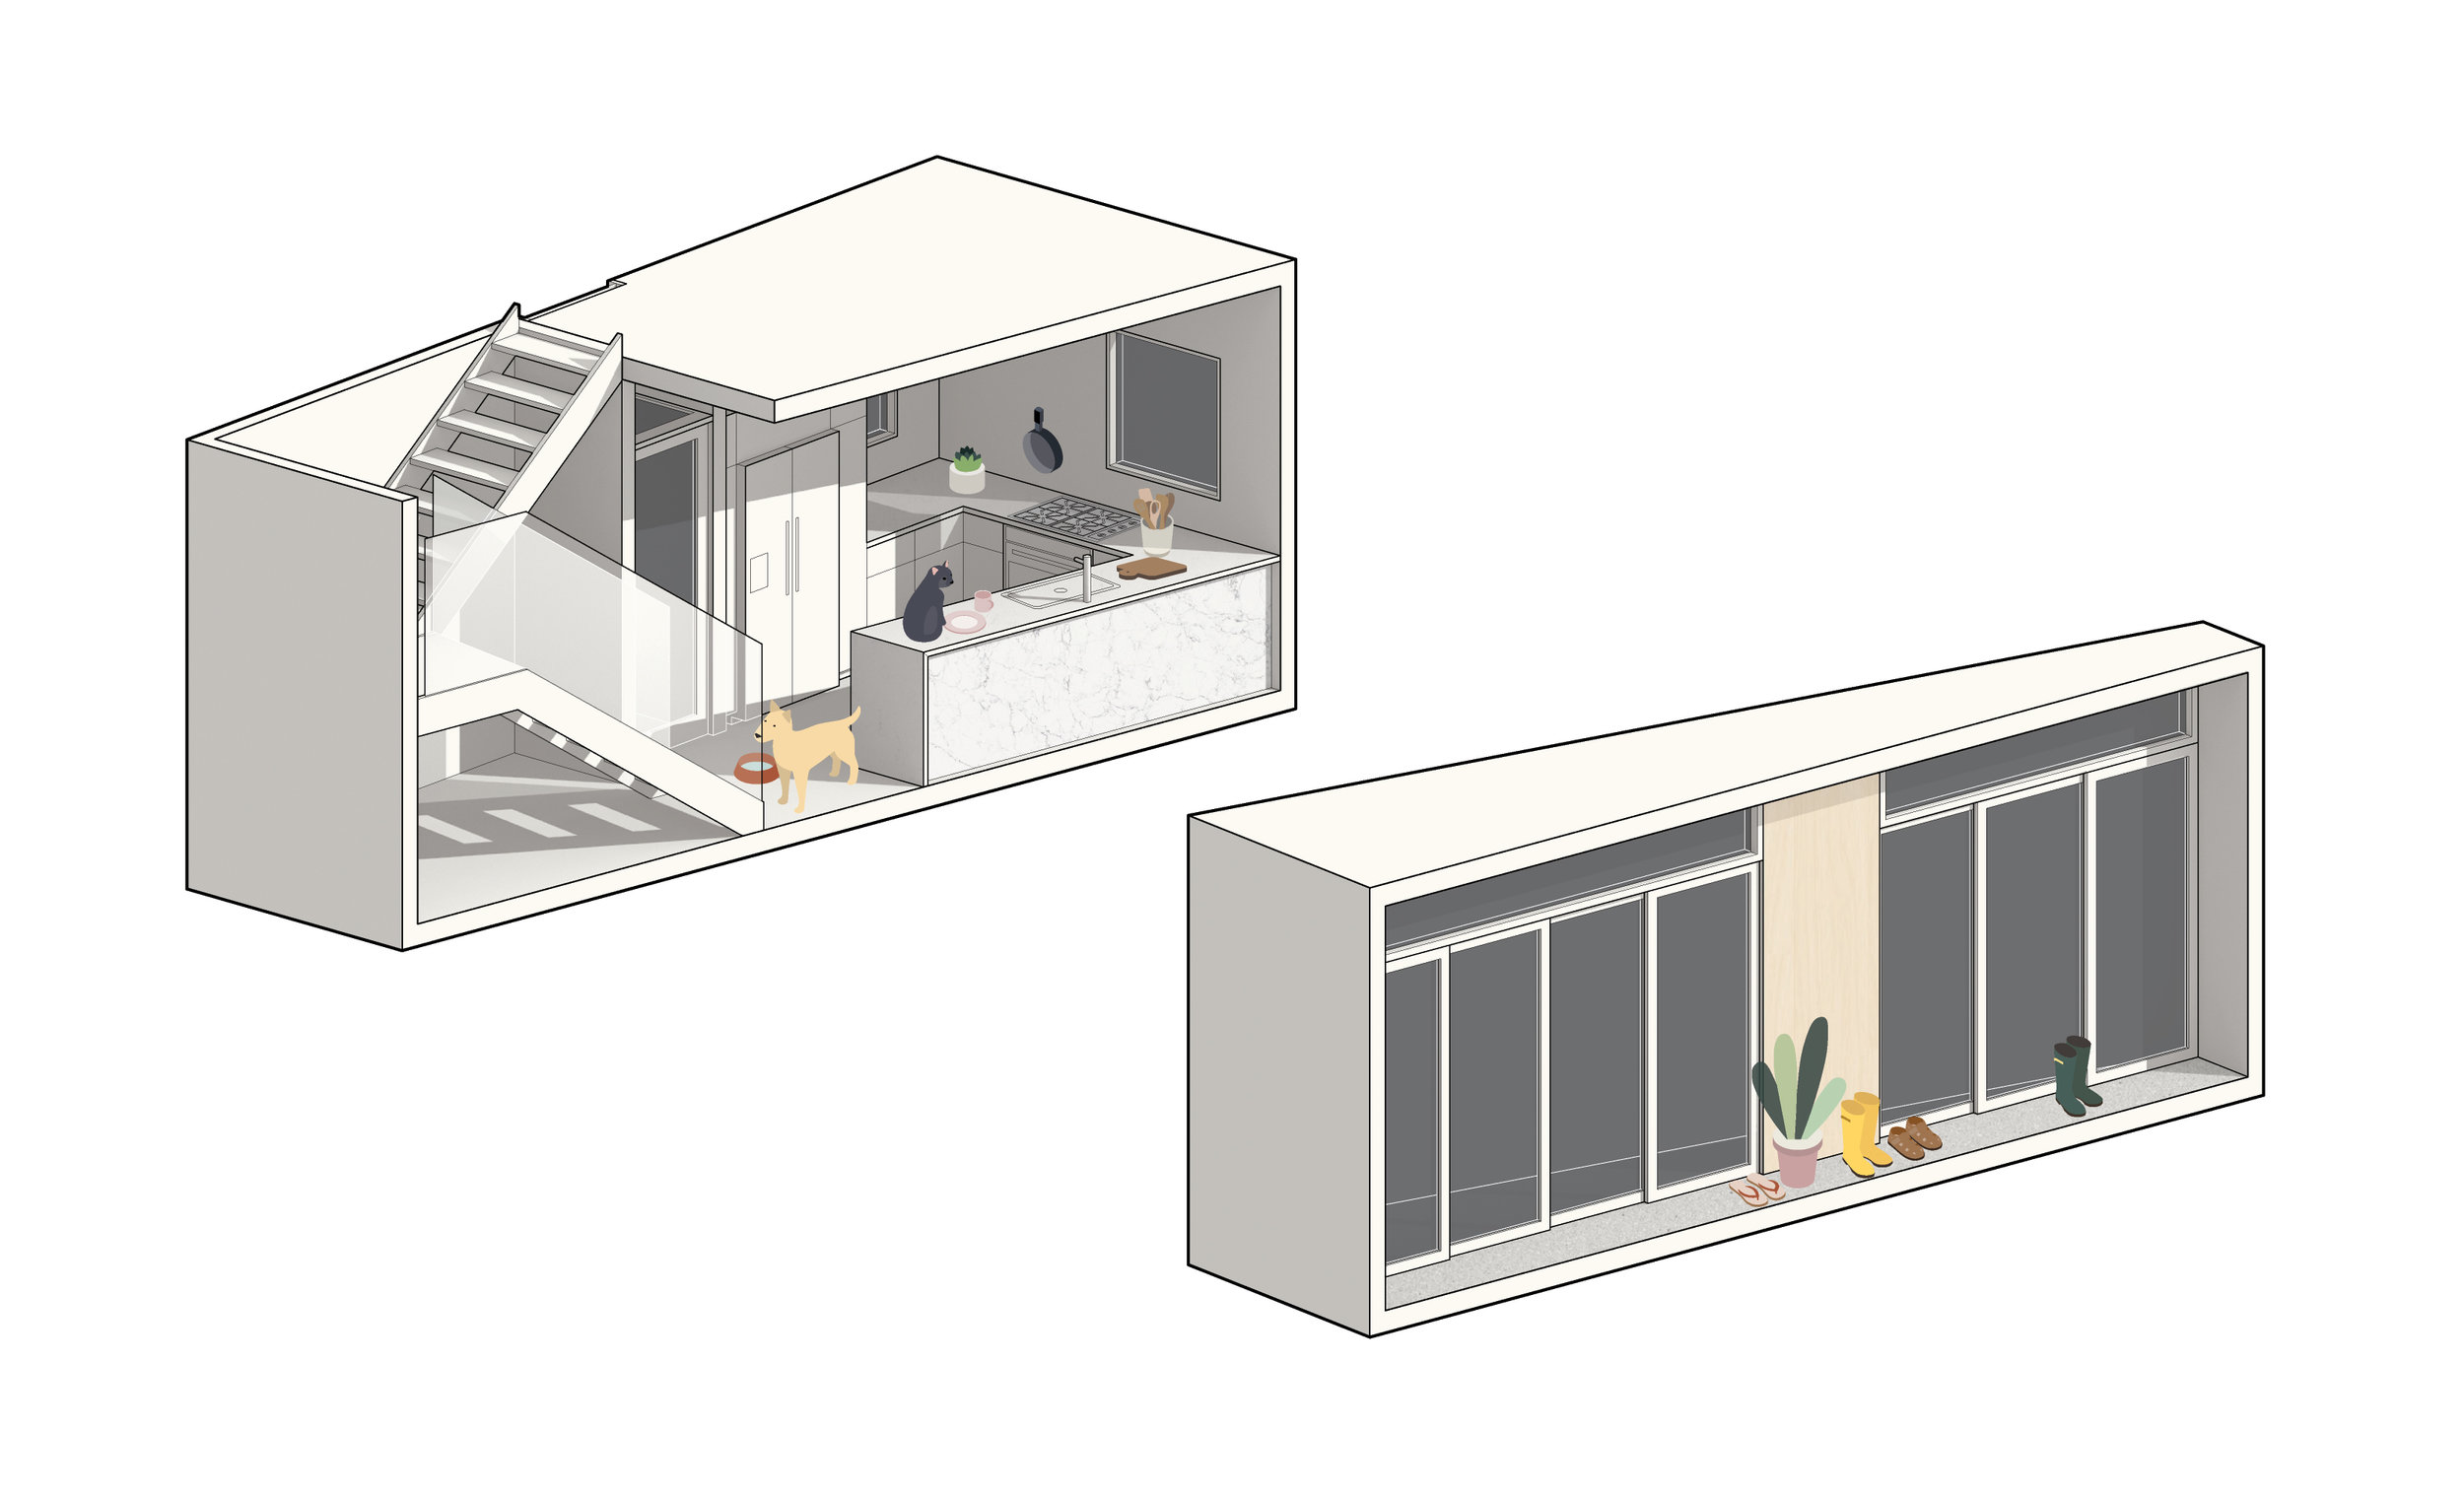 """Ground-floor """"A"""" bookend (left) incorporates the kitchen,entry, stair, and MEP. Ground-floor """"B"""" bookend (right) incorporates glazing and the door systems."""